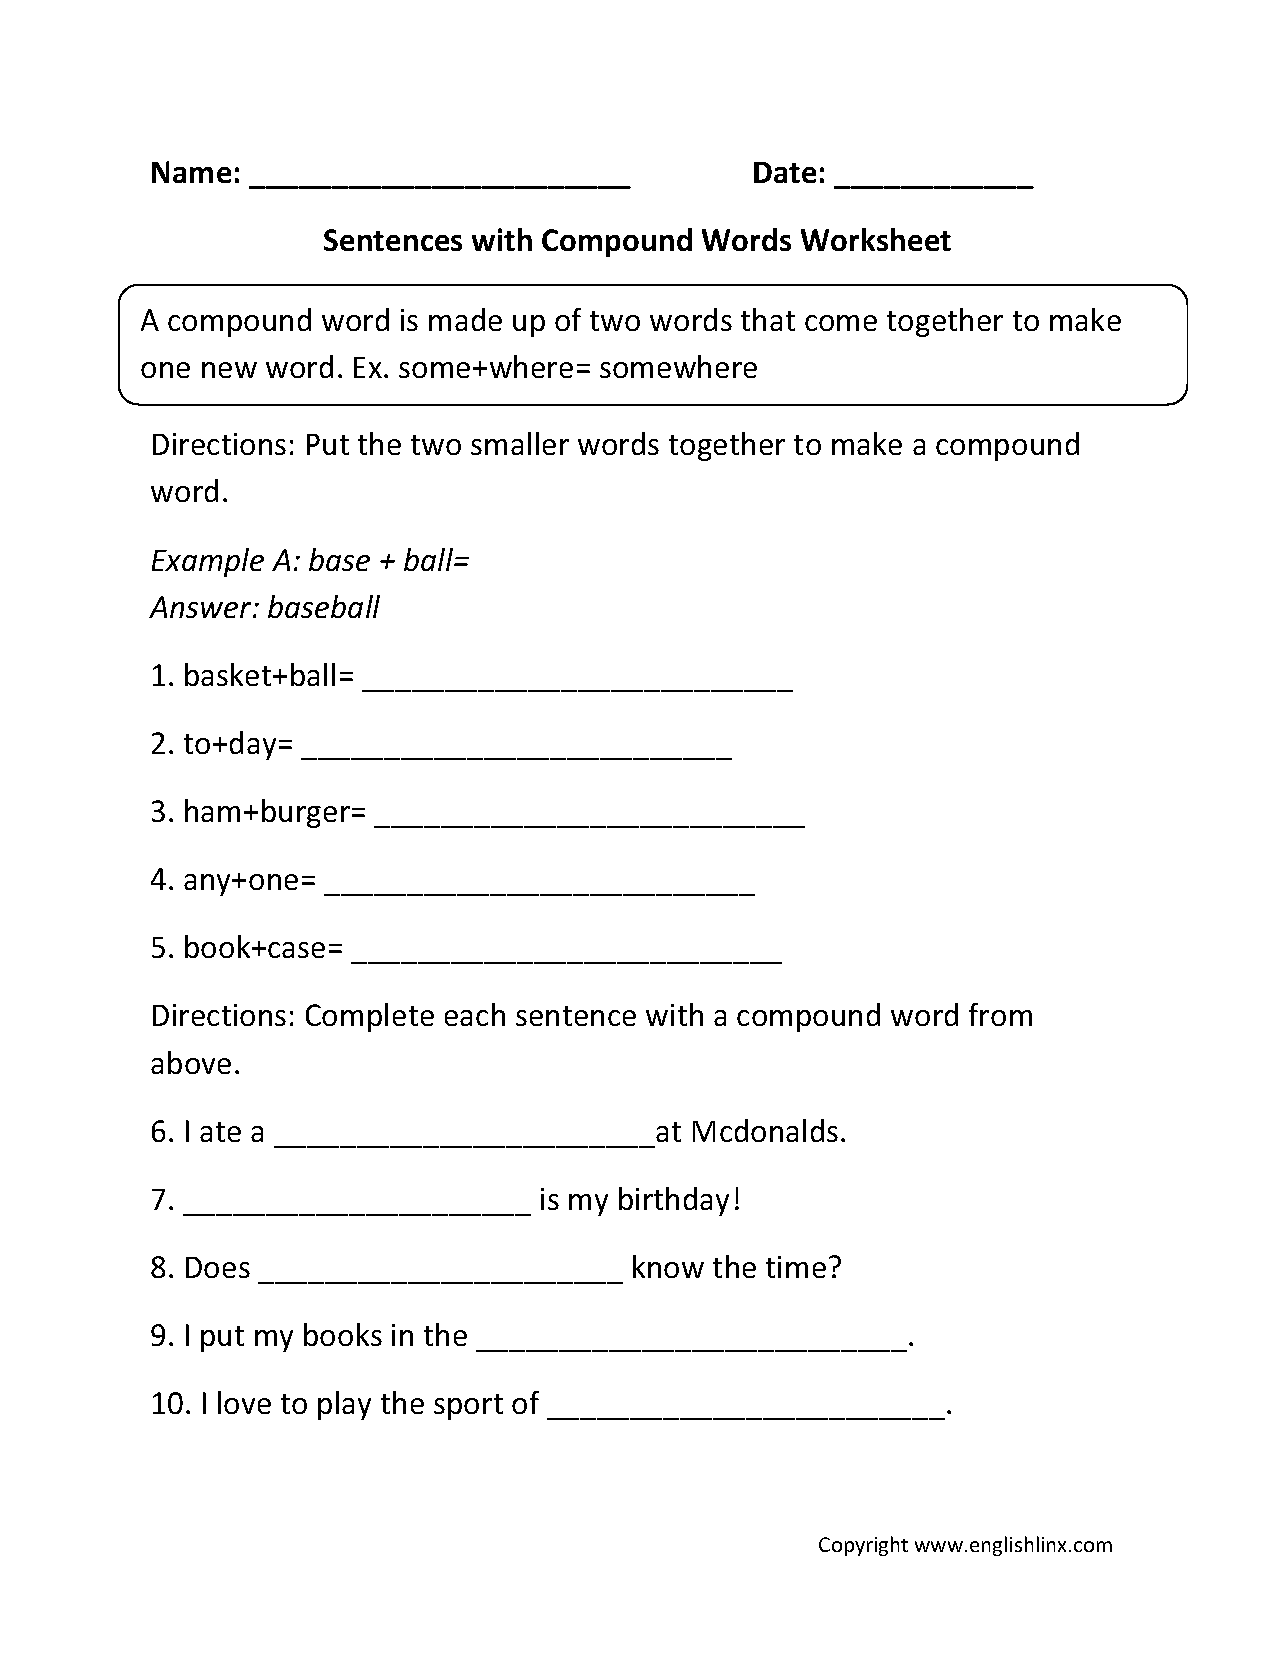 Printables Compound Words Worksheets englishlinx com compound words worksheets sentences with worksheets